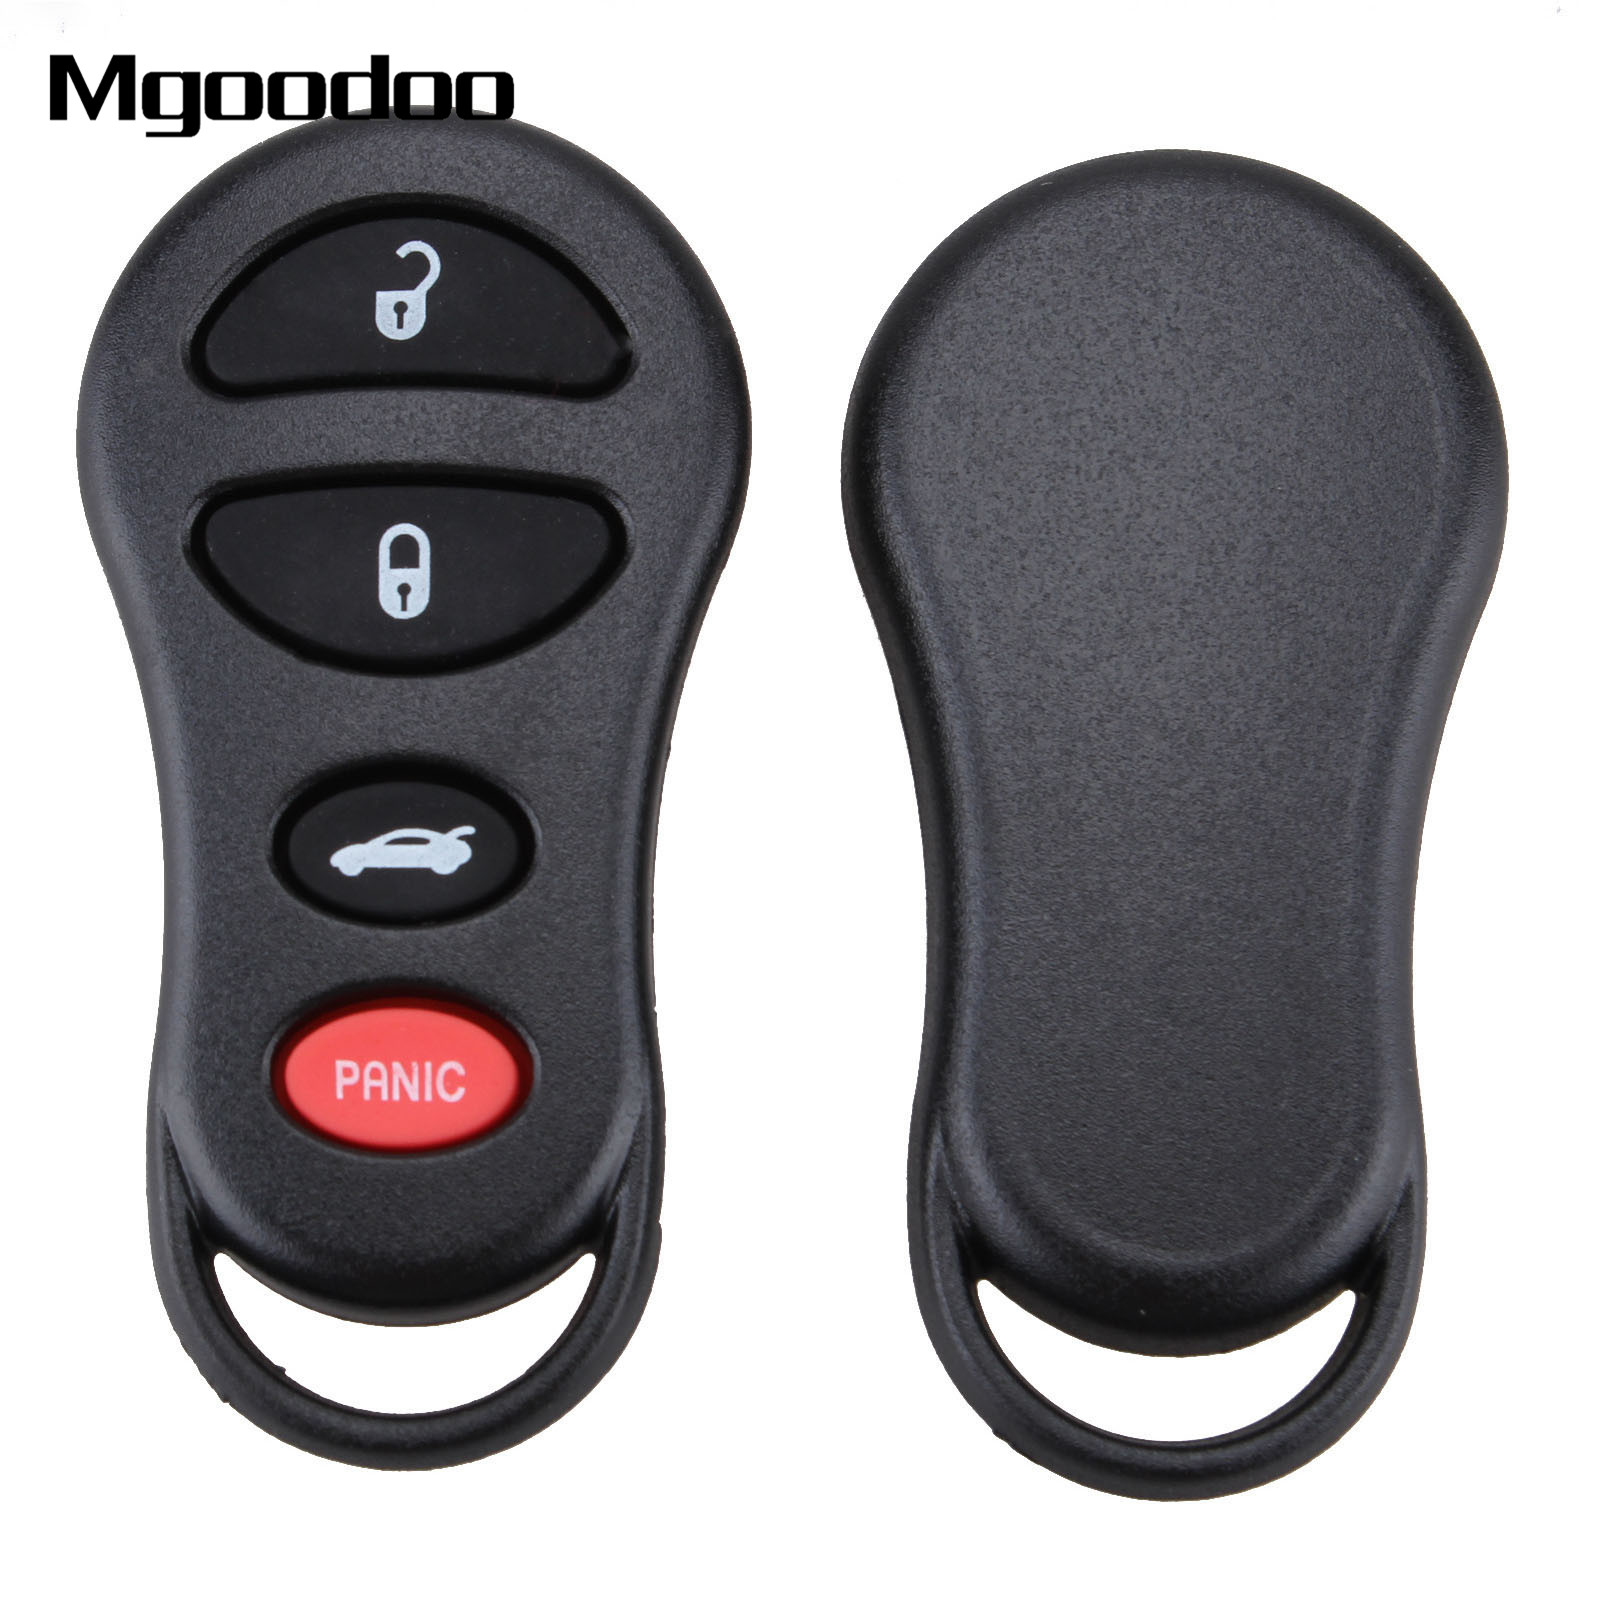 3+1 Panic Button Remote Car Key Shell Fob Blank Case Replacement For Chrysler Sebring Jeep Liberty Dodge Neon Intrepid Stratus